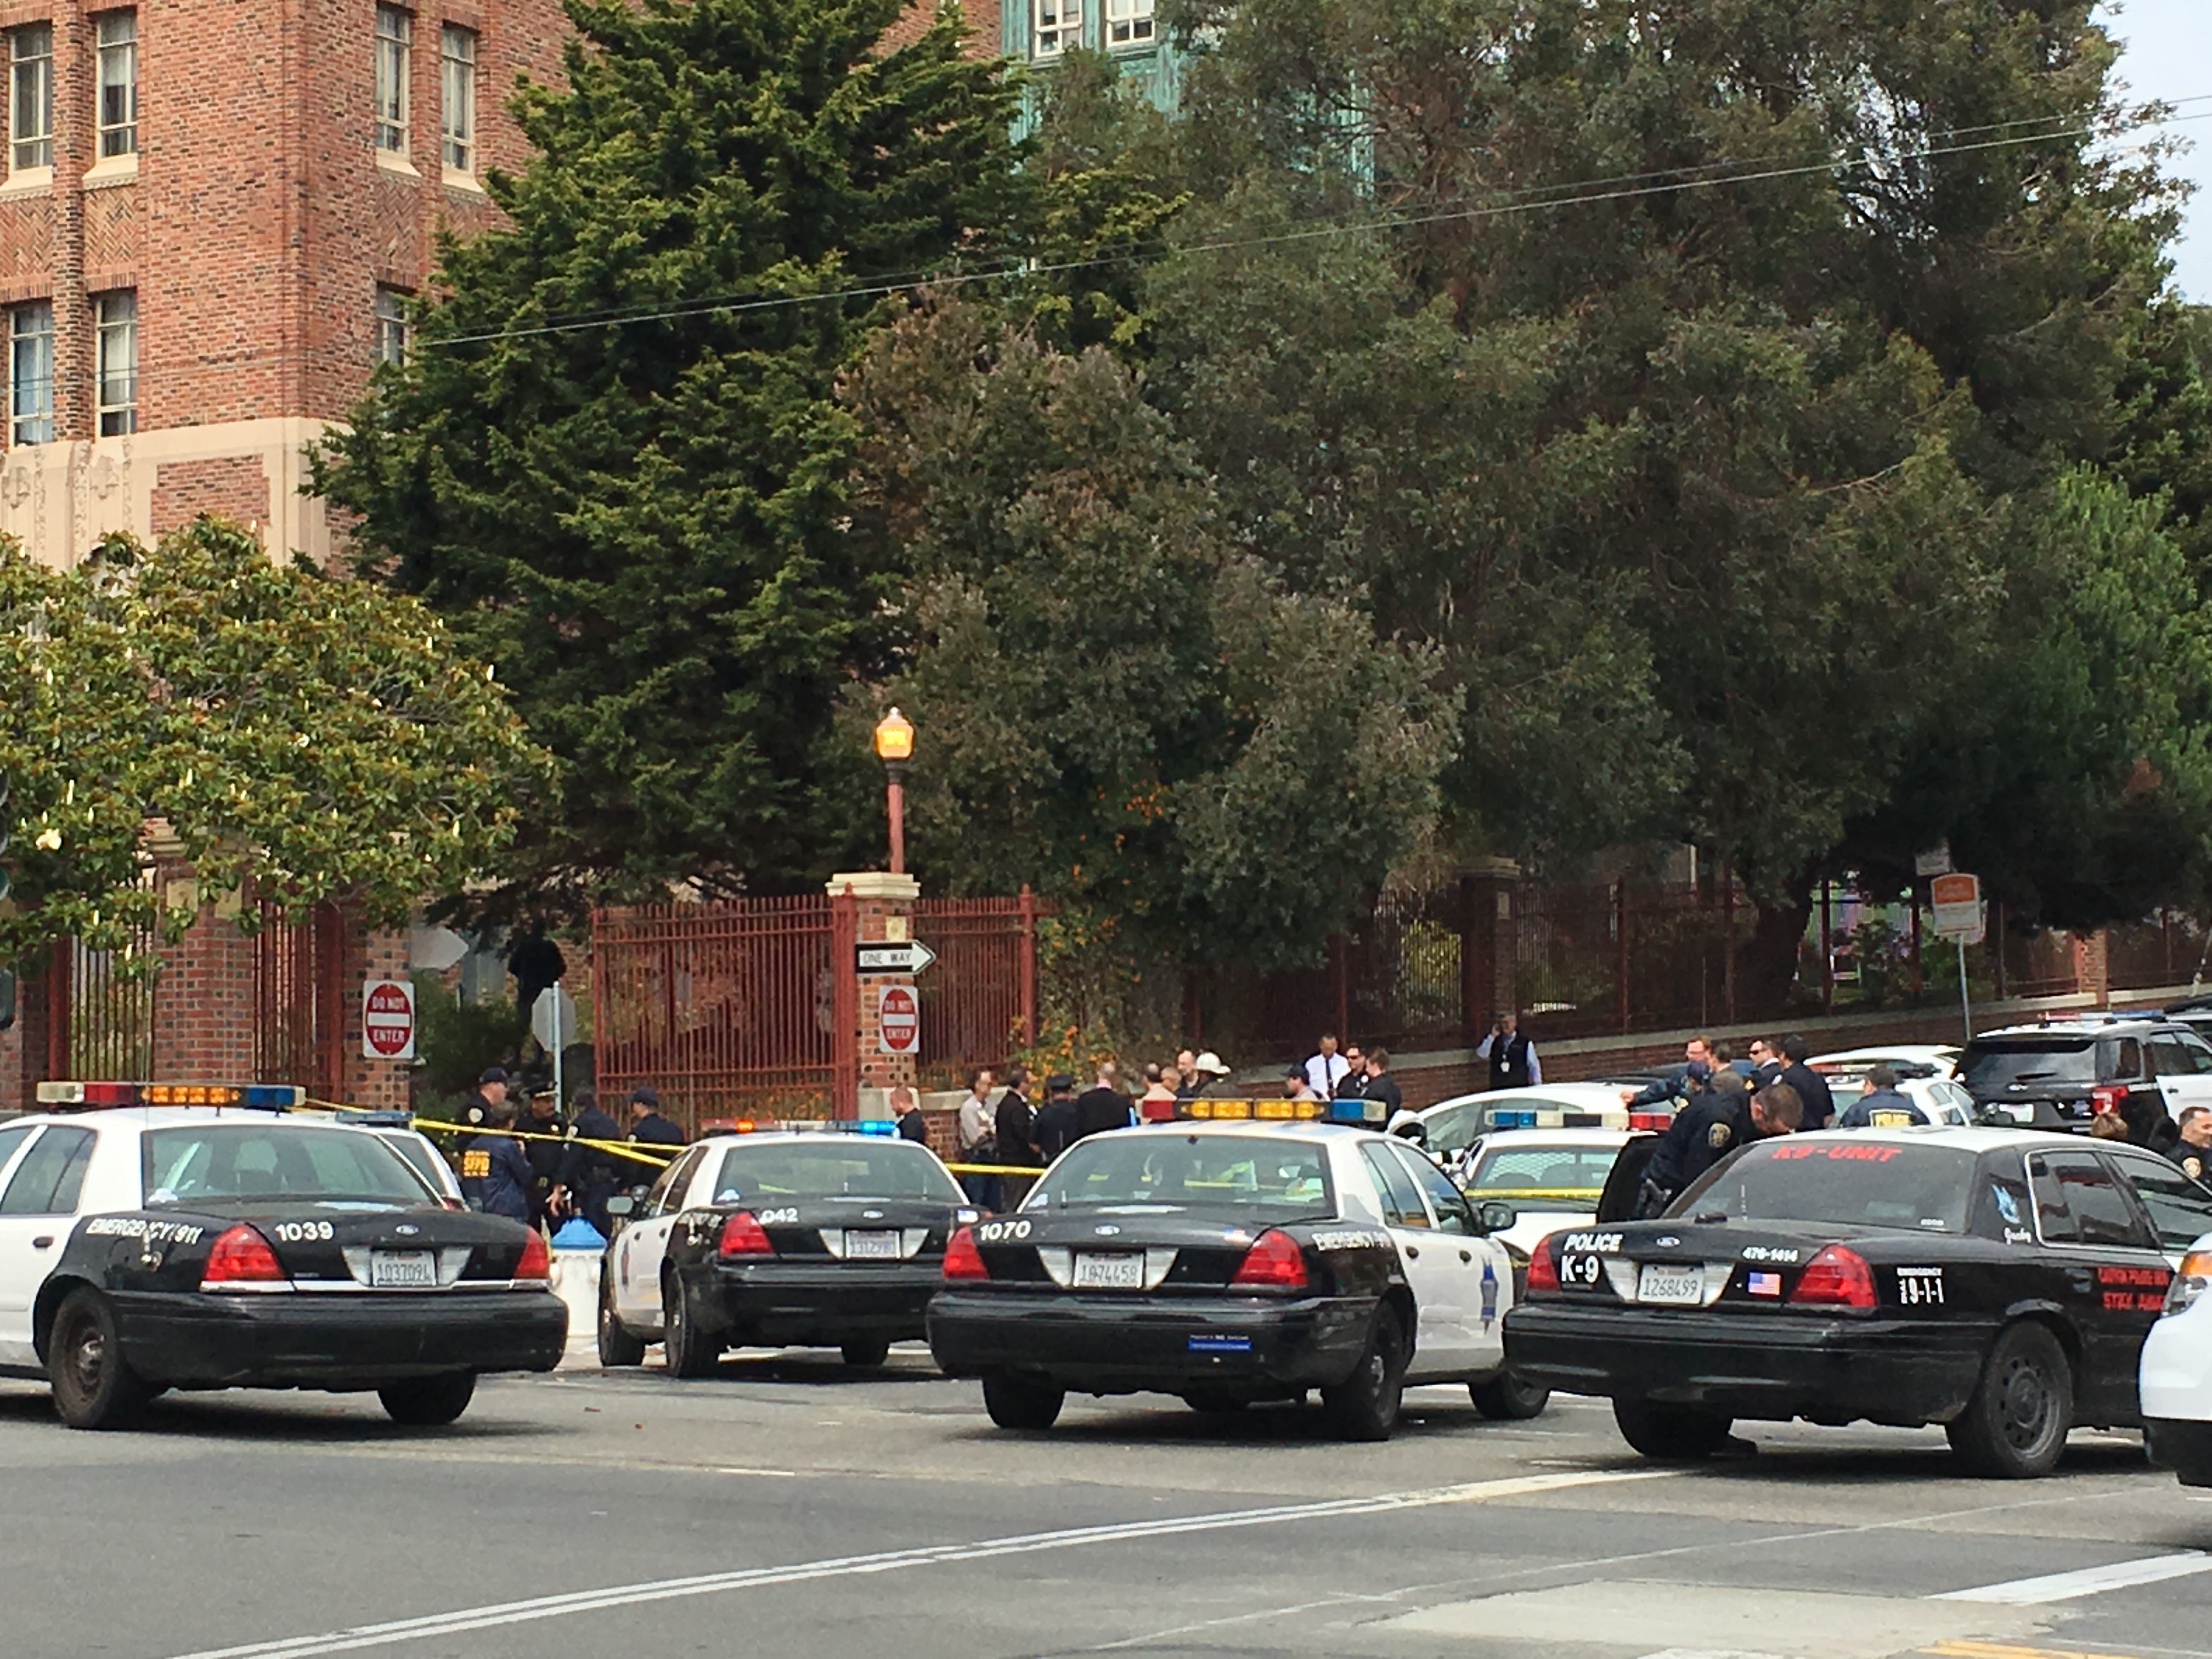 DEVELOPING: Body of a woman found at Zuckerberg SF General Hospital